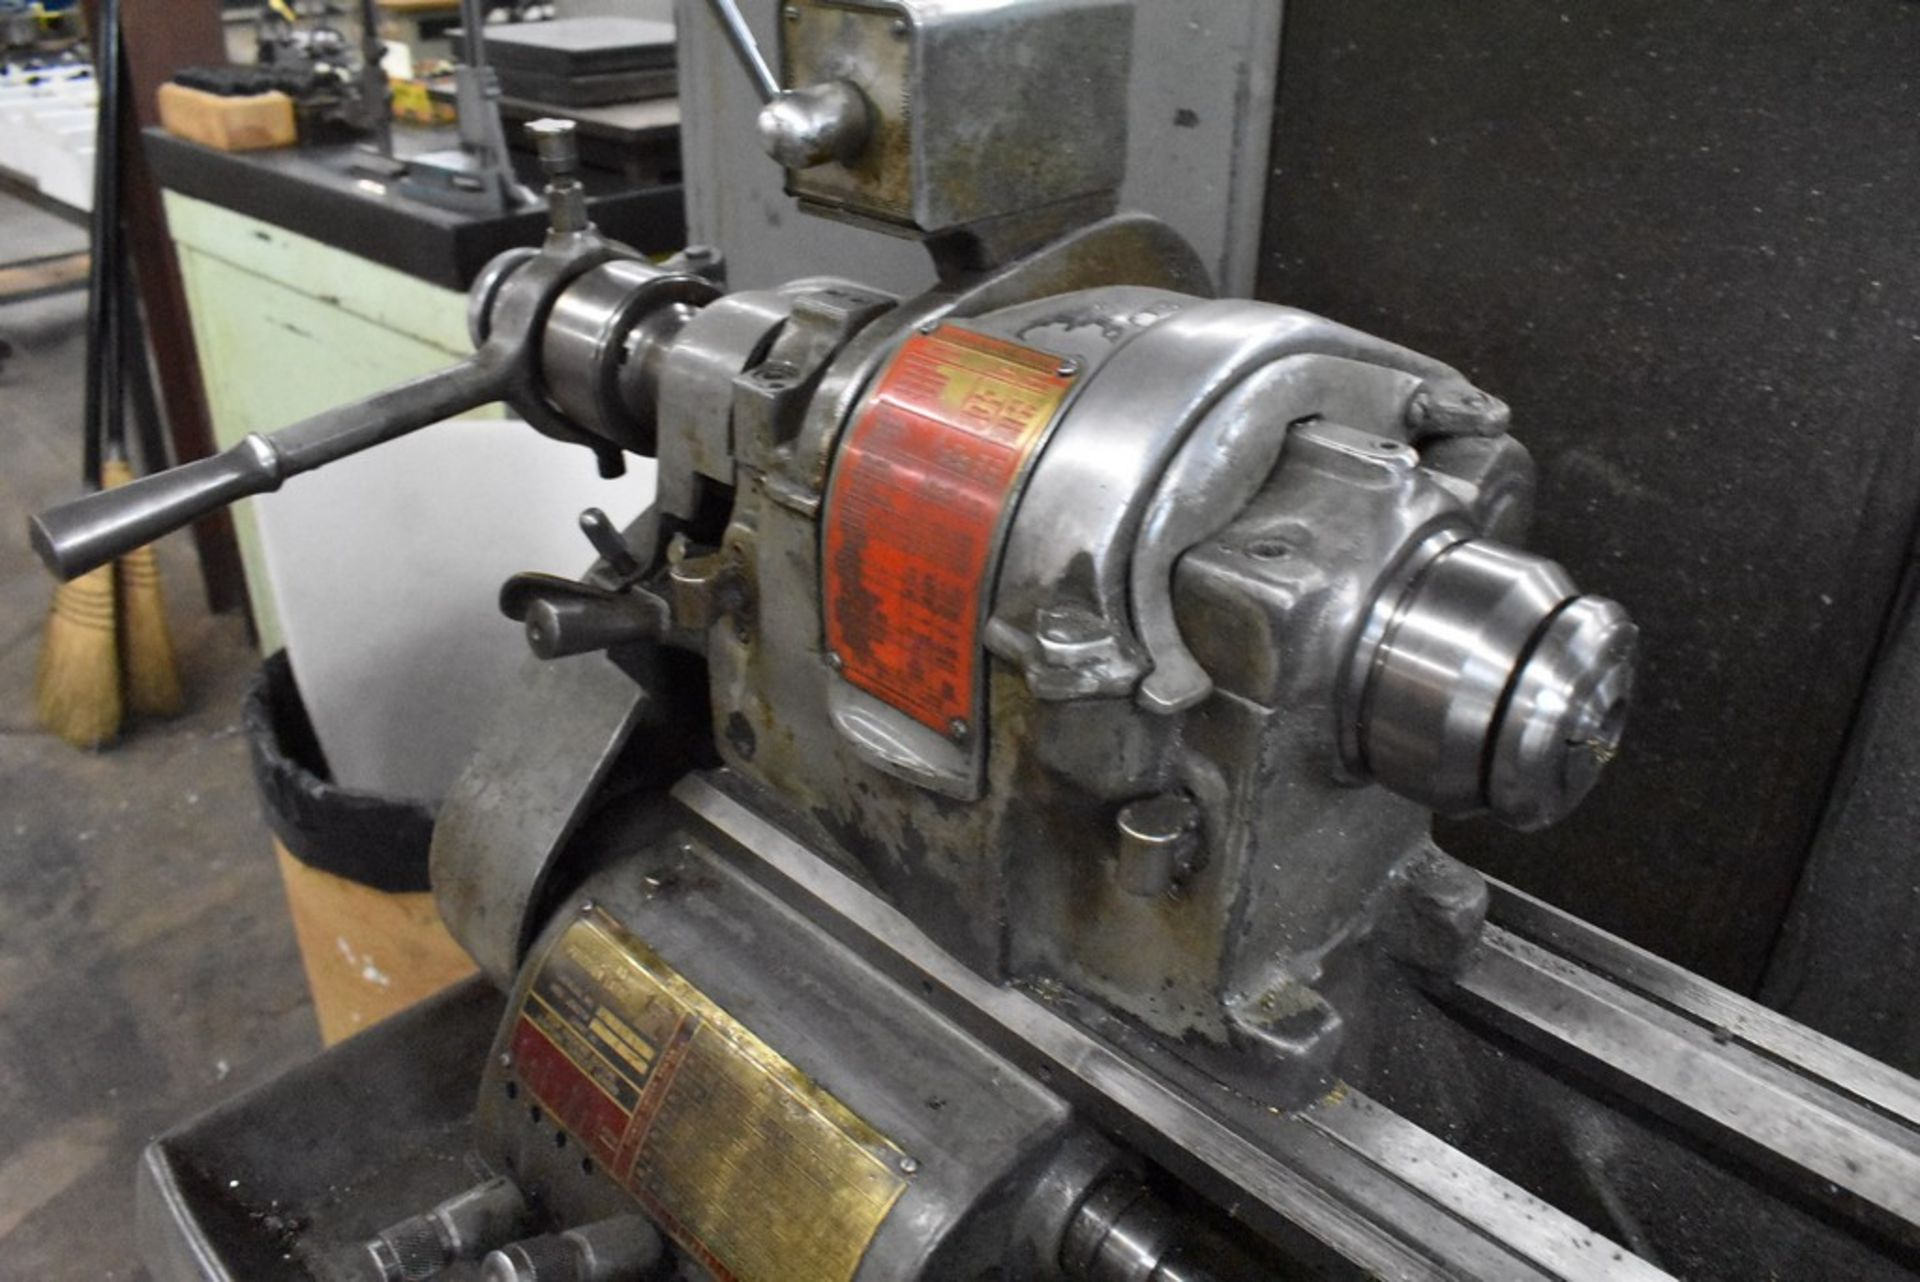 """SOUTH BEND 10""""X30"""" CABINET BASE TOOL ROOM LATHE, S/N 16711RKX12, WITH COLLET CLOSER, 4-WAY TOOL - Image 8 of 13"""